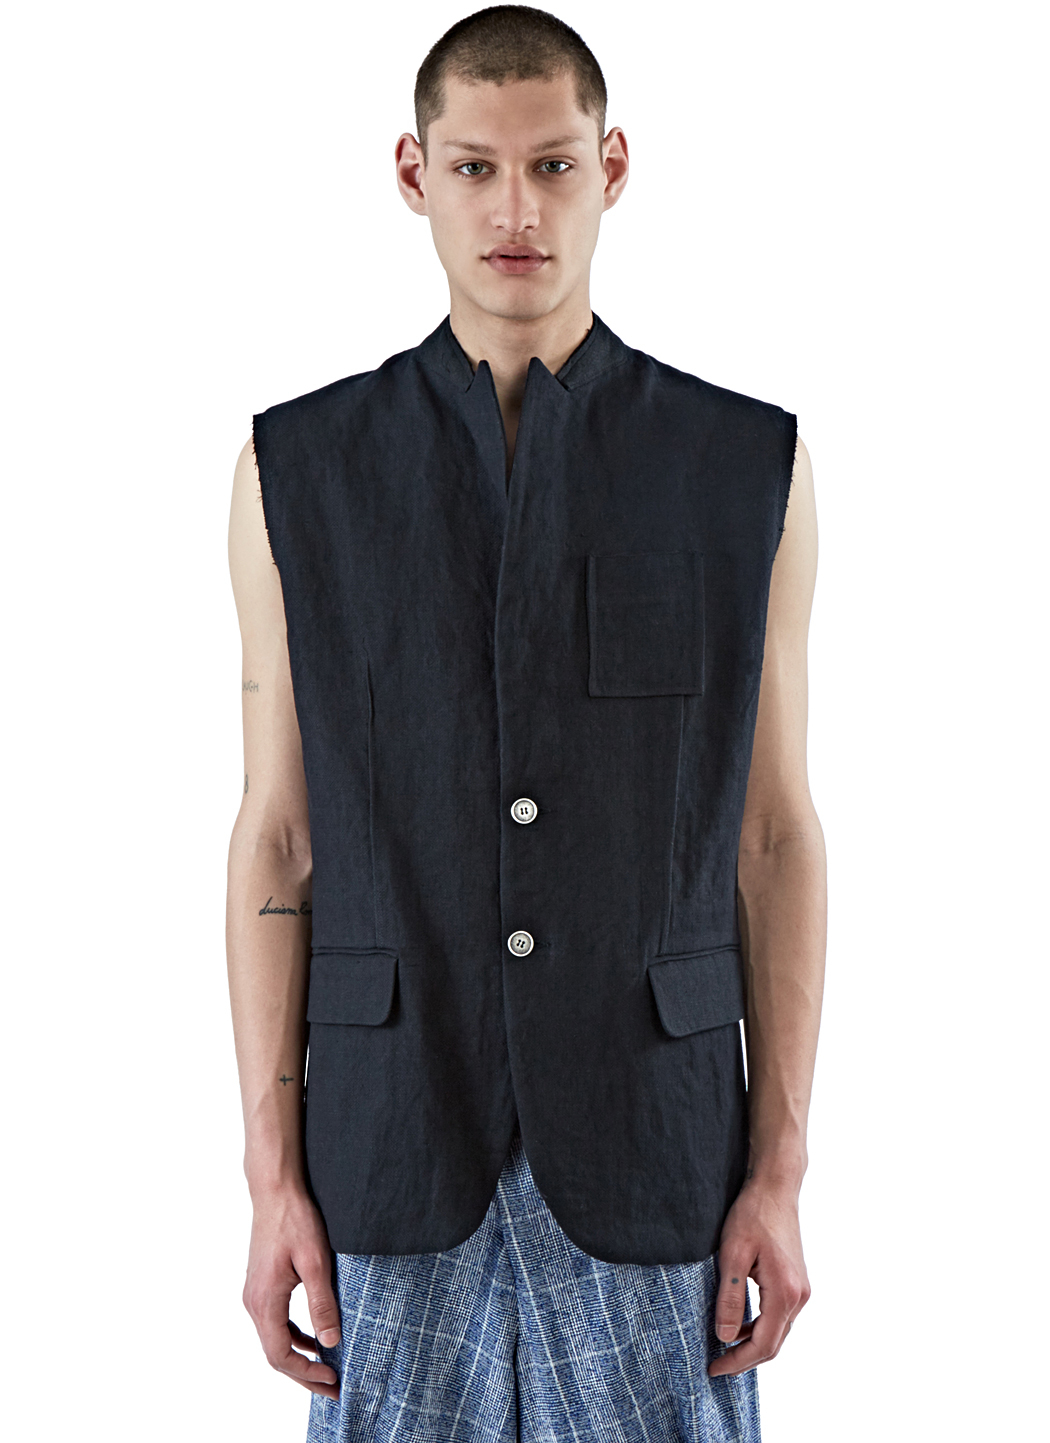 Find sleeveless jacket men at ShopStyle. Shop the latest collection of sleeveless jacket men from the most popular stores - all in one place.